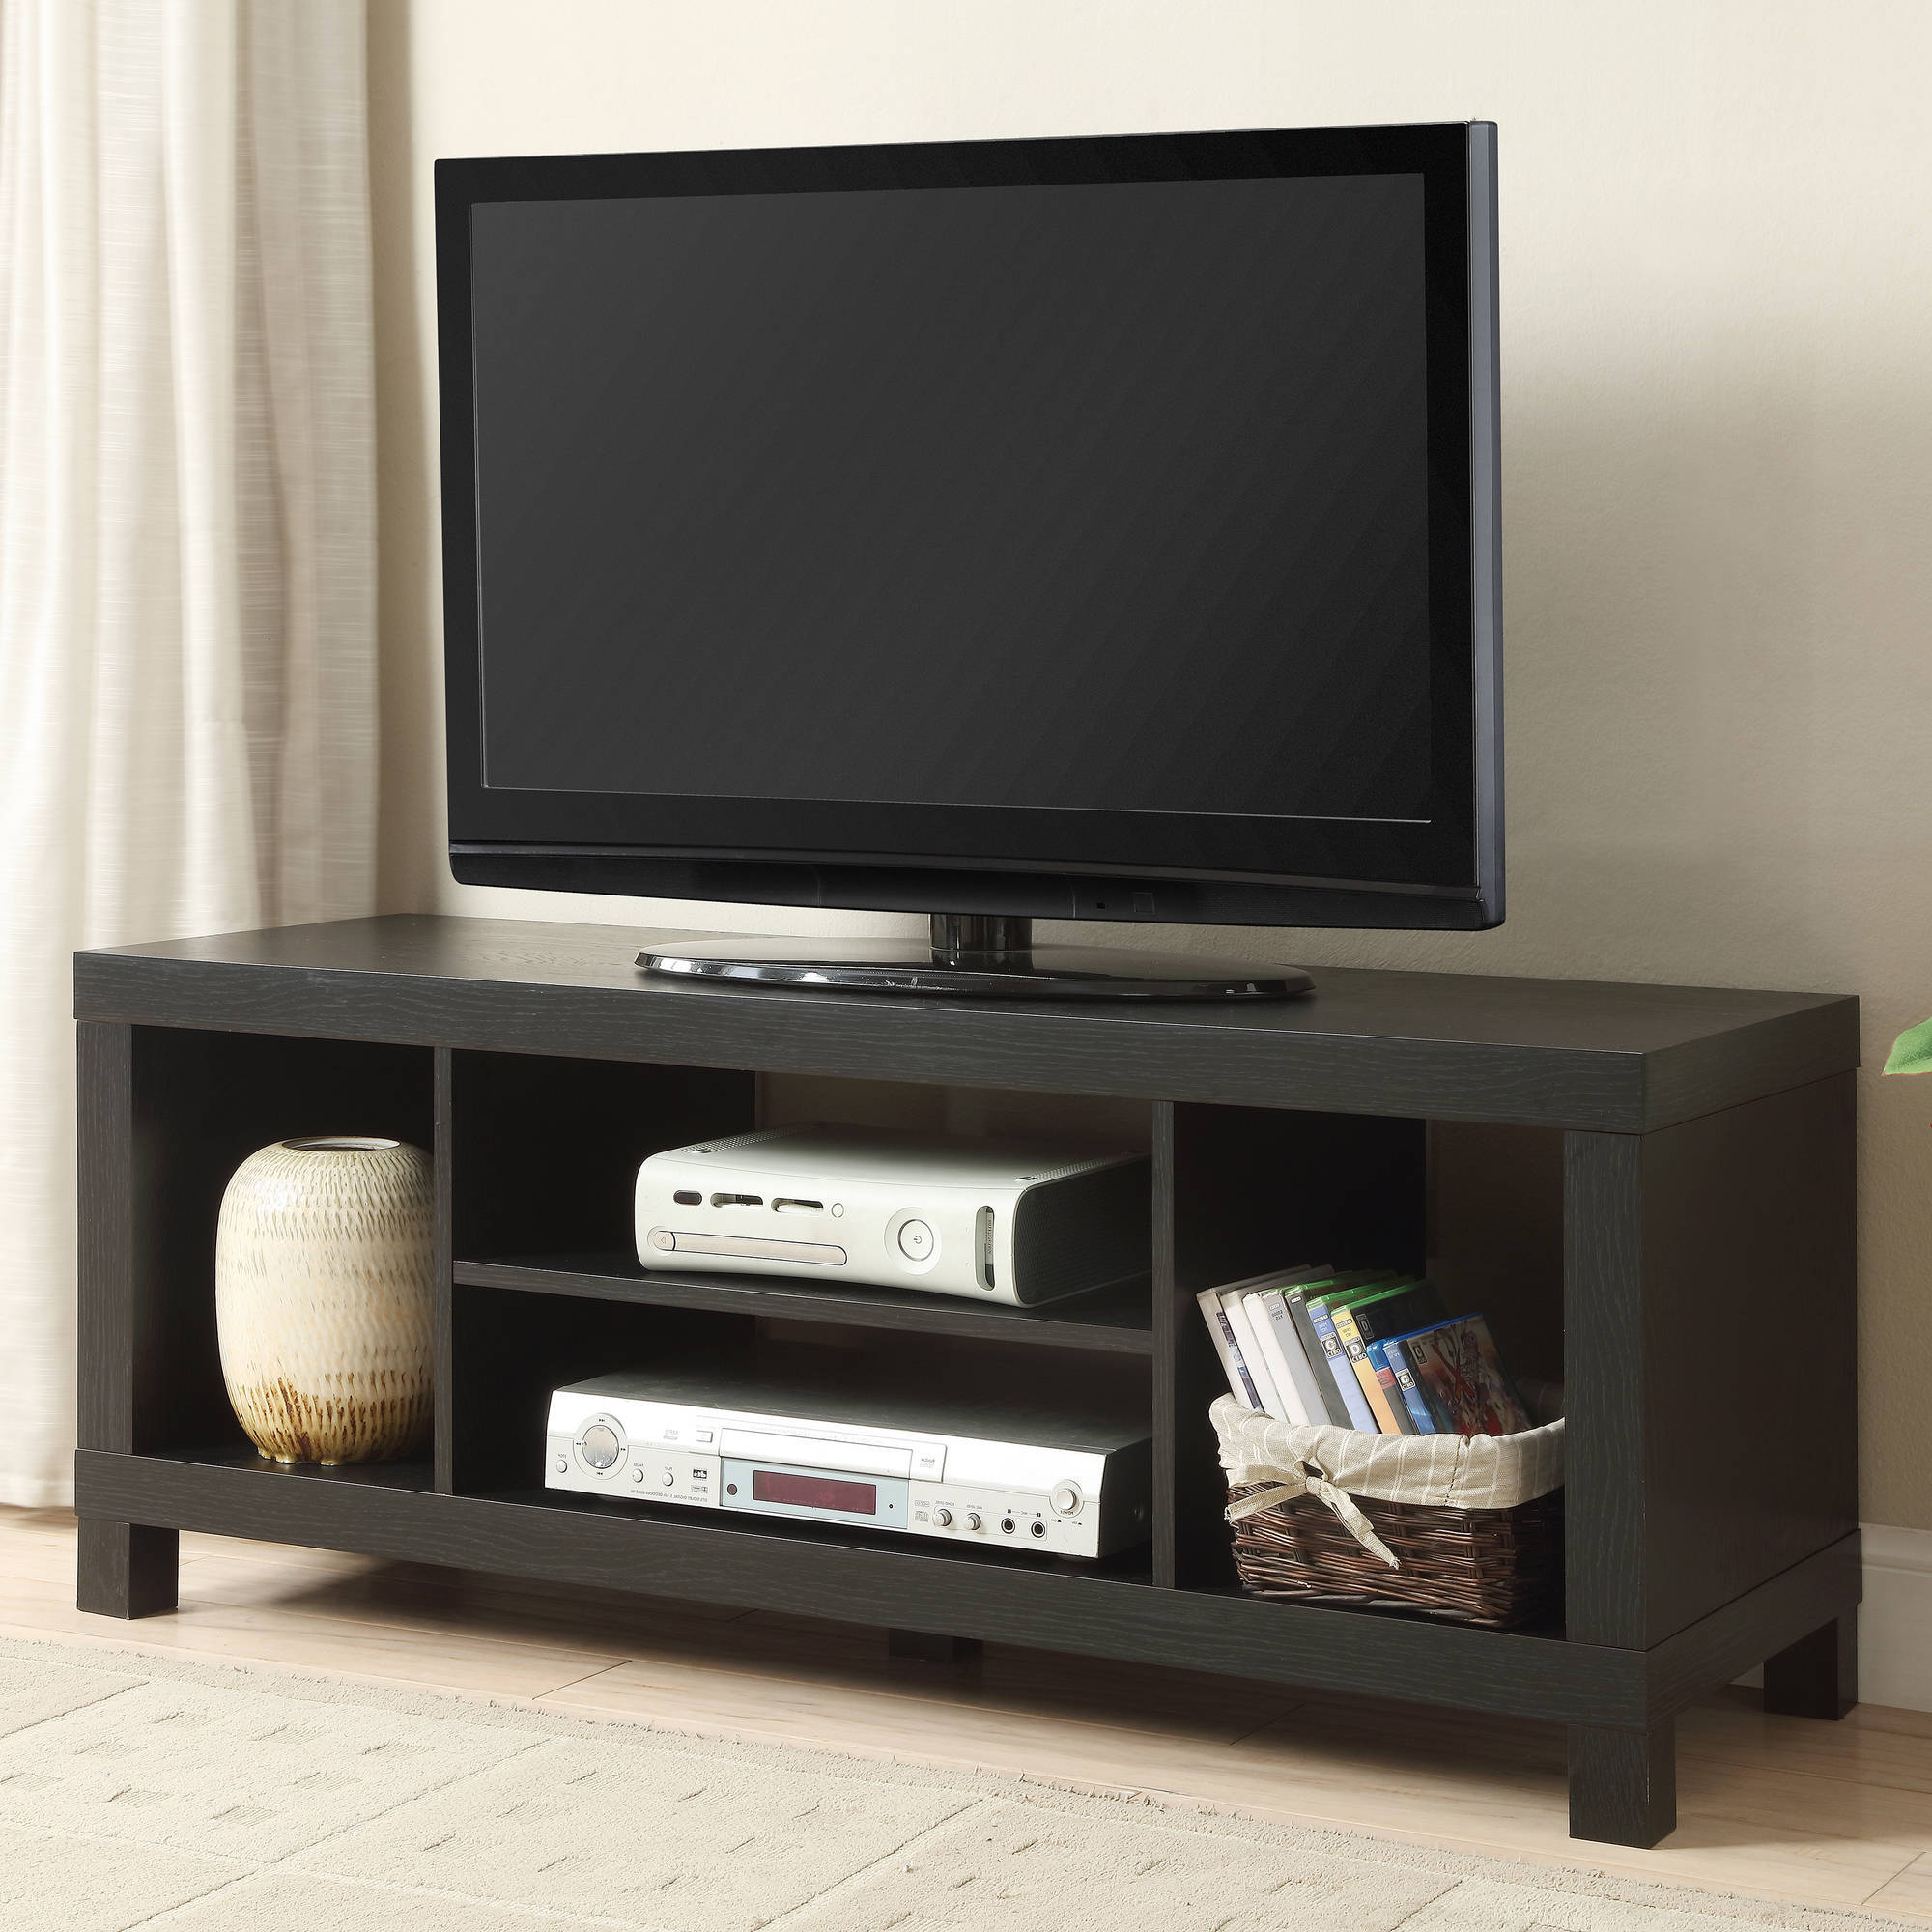 Fashionable Tv Stands For 55 Inch Tv Pertaining To 42 Inch Tv Stand Entertainment Center Home Theater Media Storage (View 10 of 20)